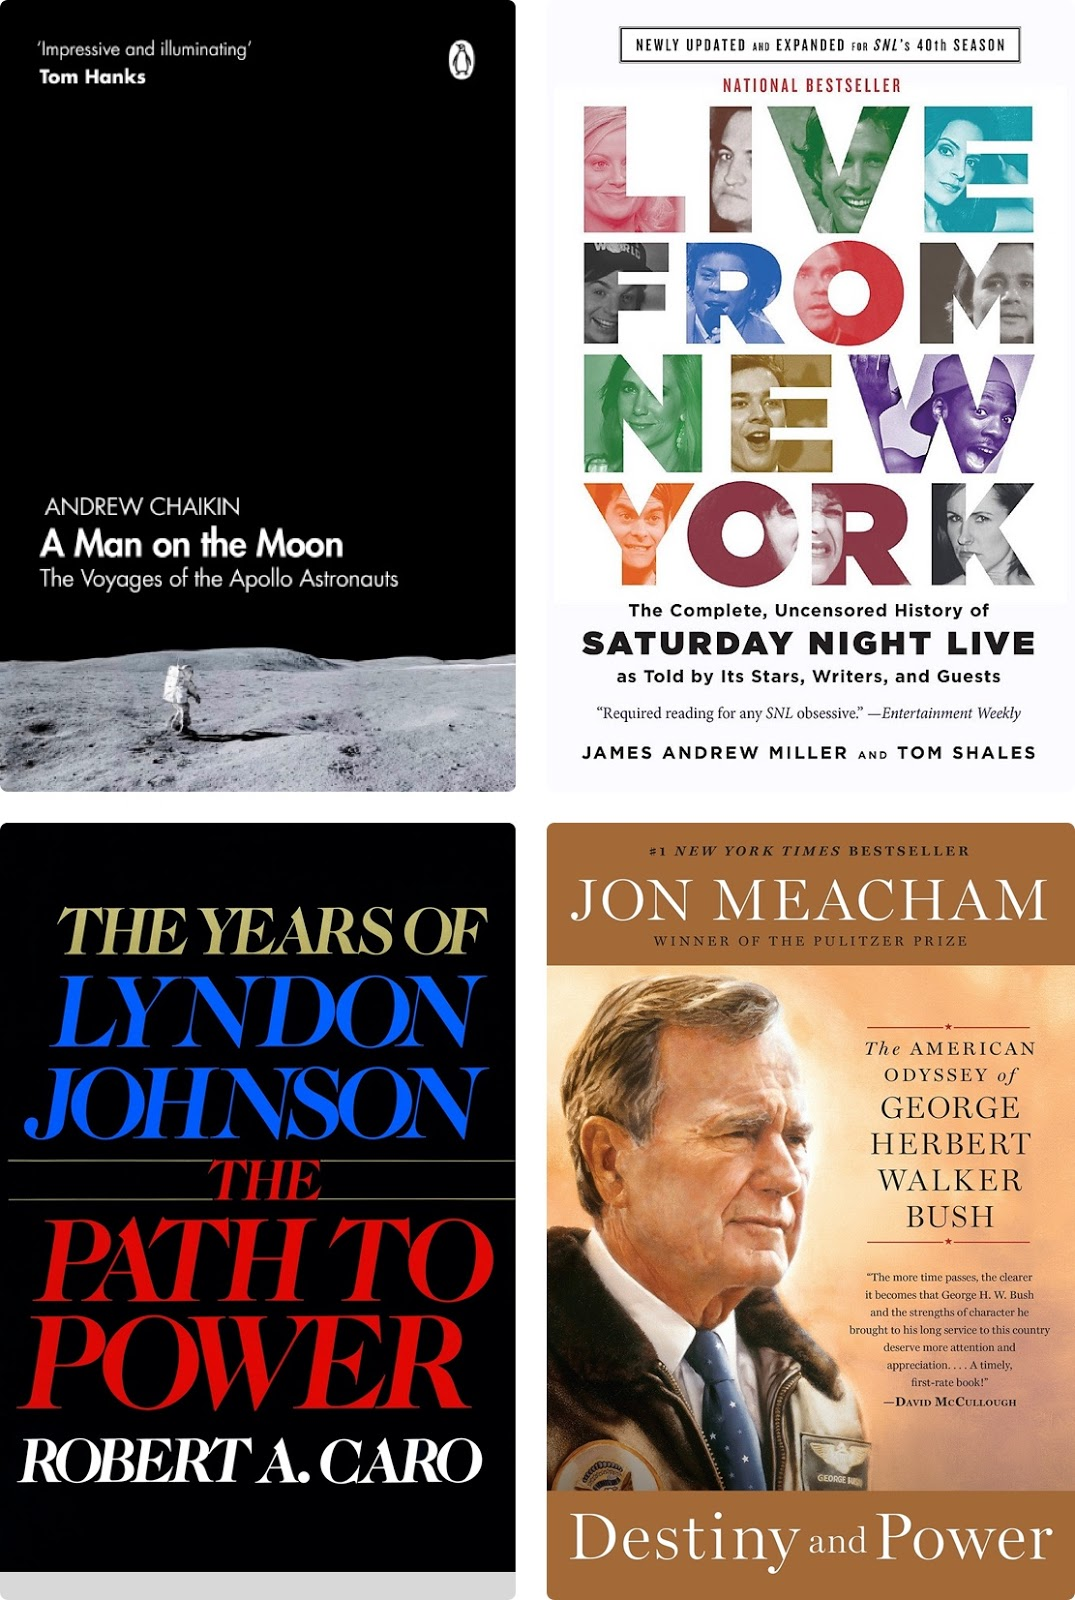 Four of my favorite books that I read this year.